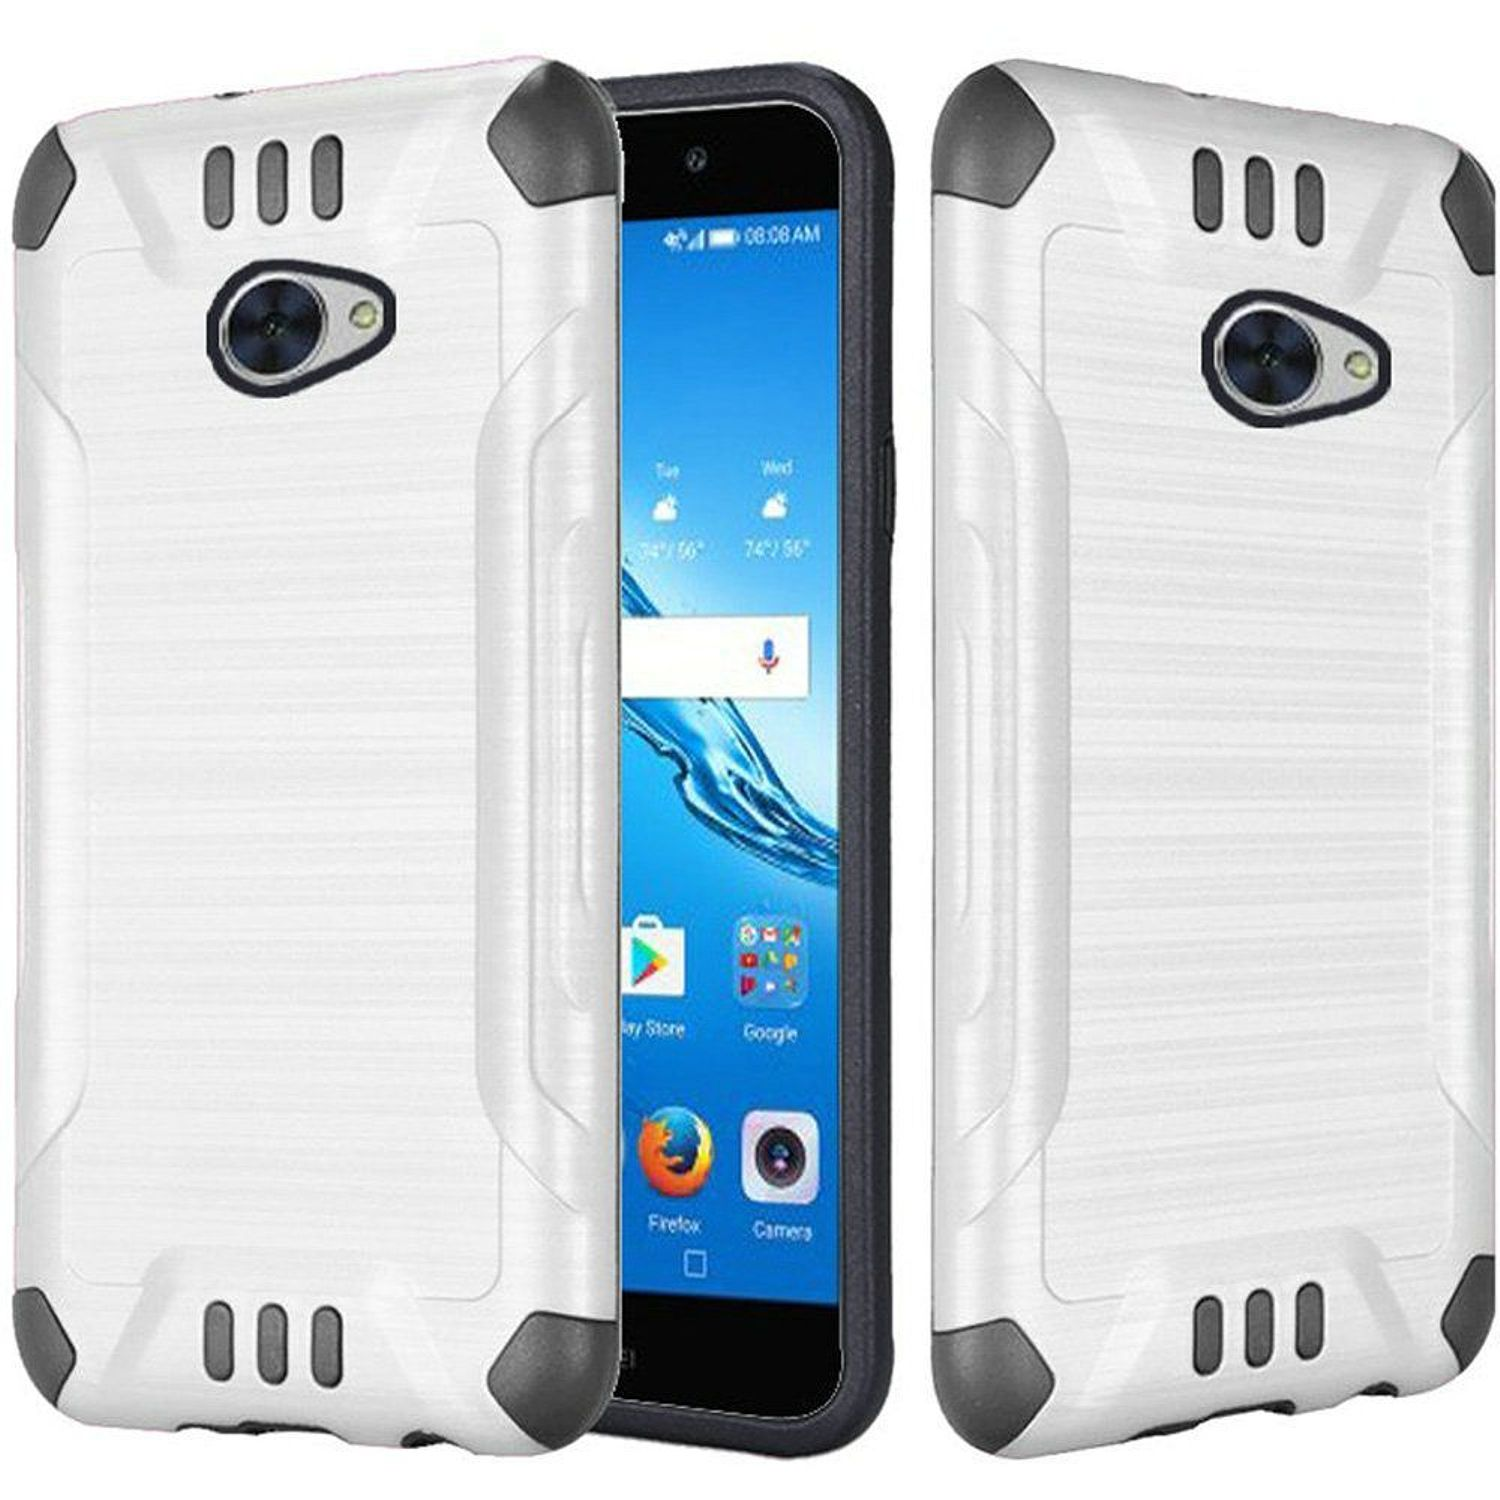 Huawei Ascend XT2 Case, by HR Wireless Slim Armor Dual Layer [Shock Absorbing] Hybrid Brushed Hard Plastic/Soft TPU Rubber Case Cover For Huawei Ascend XT2, White/Black